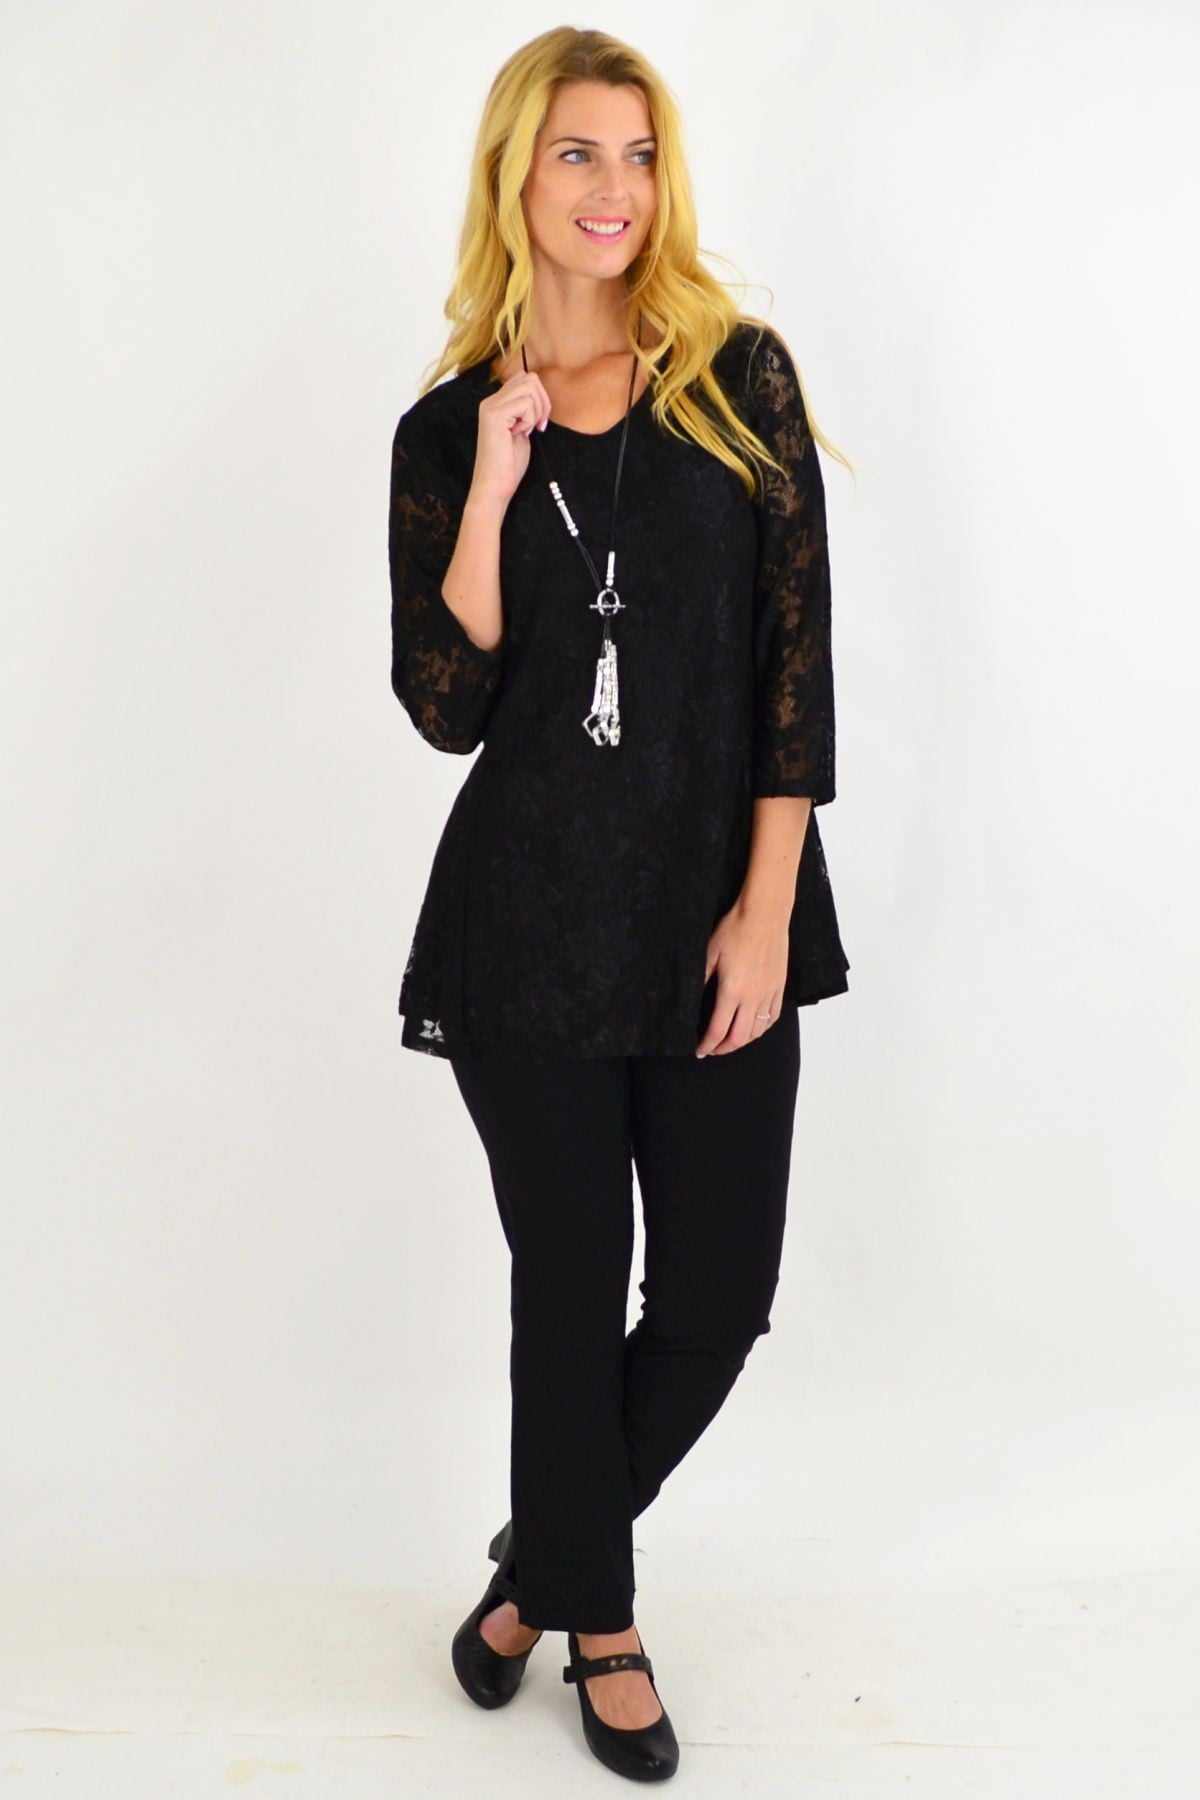 Night Out Black Lace Tunic | I Love Tunics | Tunic Tops | Tunic | Tunic Dresses  | womens clothing online